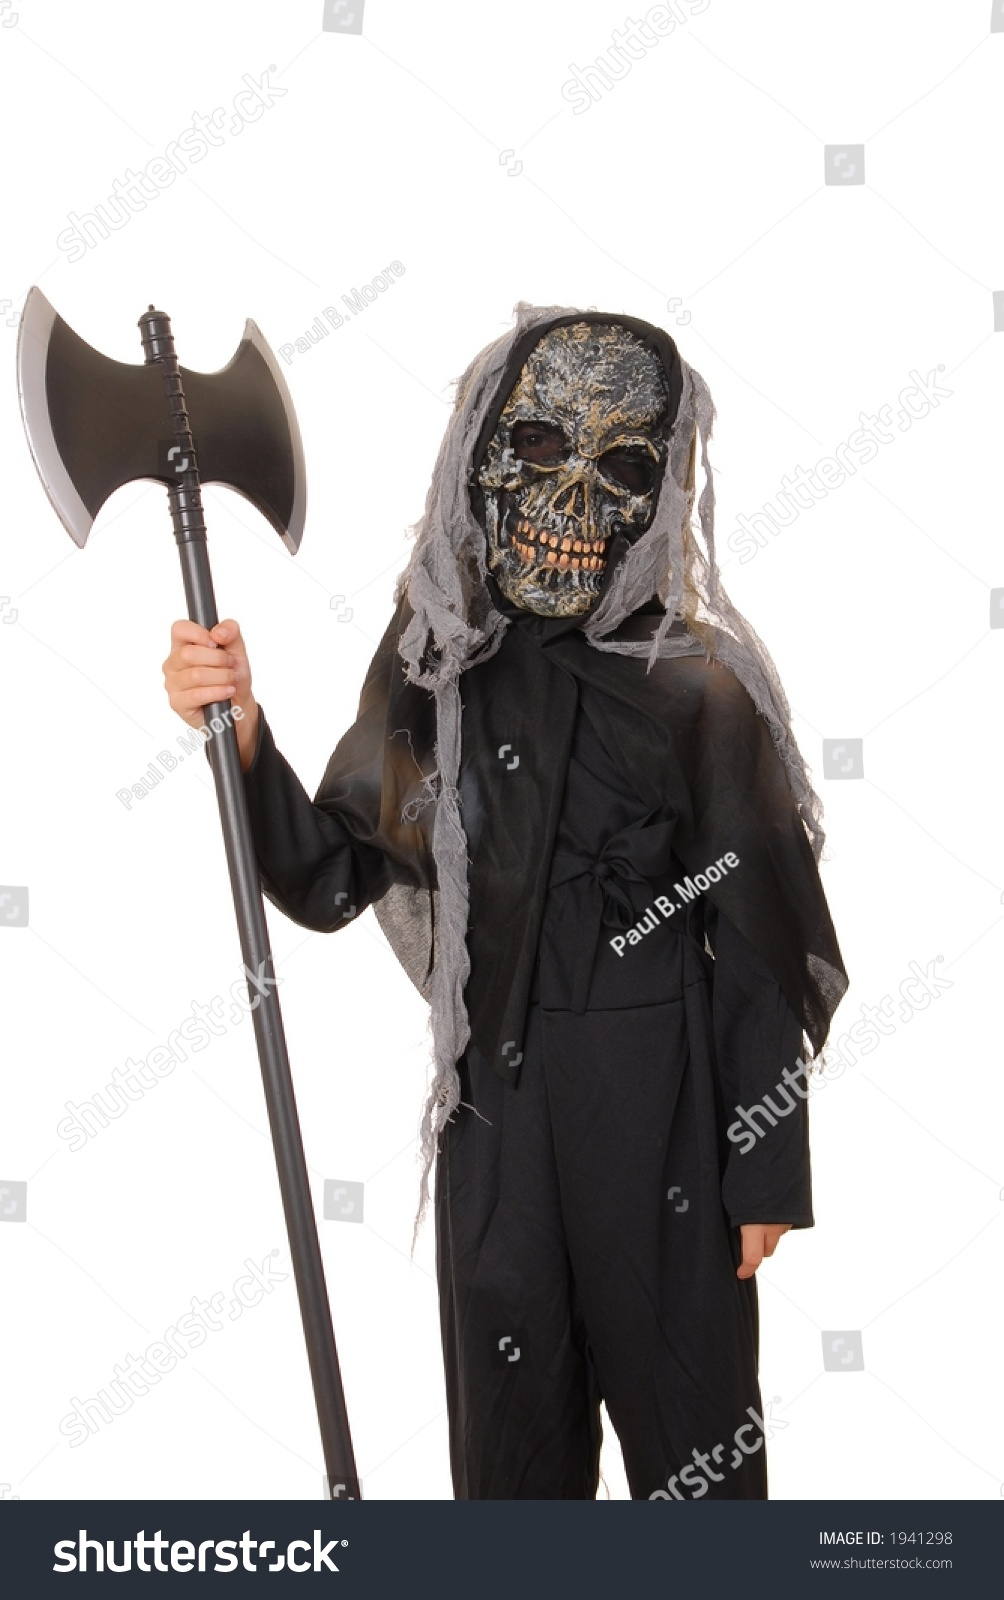 Young Boy Ghoul Halloween Costume Stock Photo 1941298 - Shutterstock